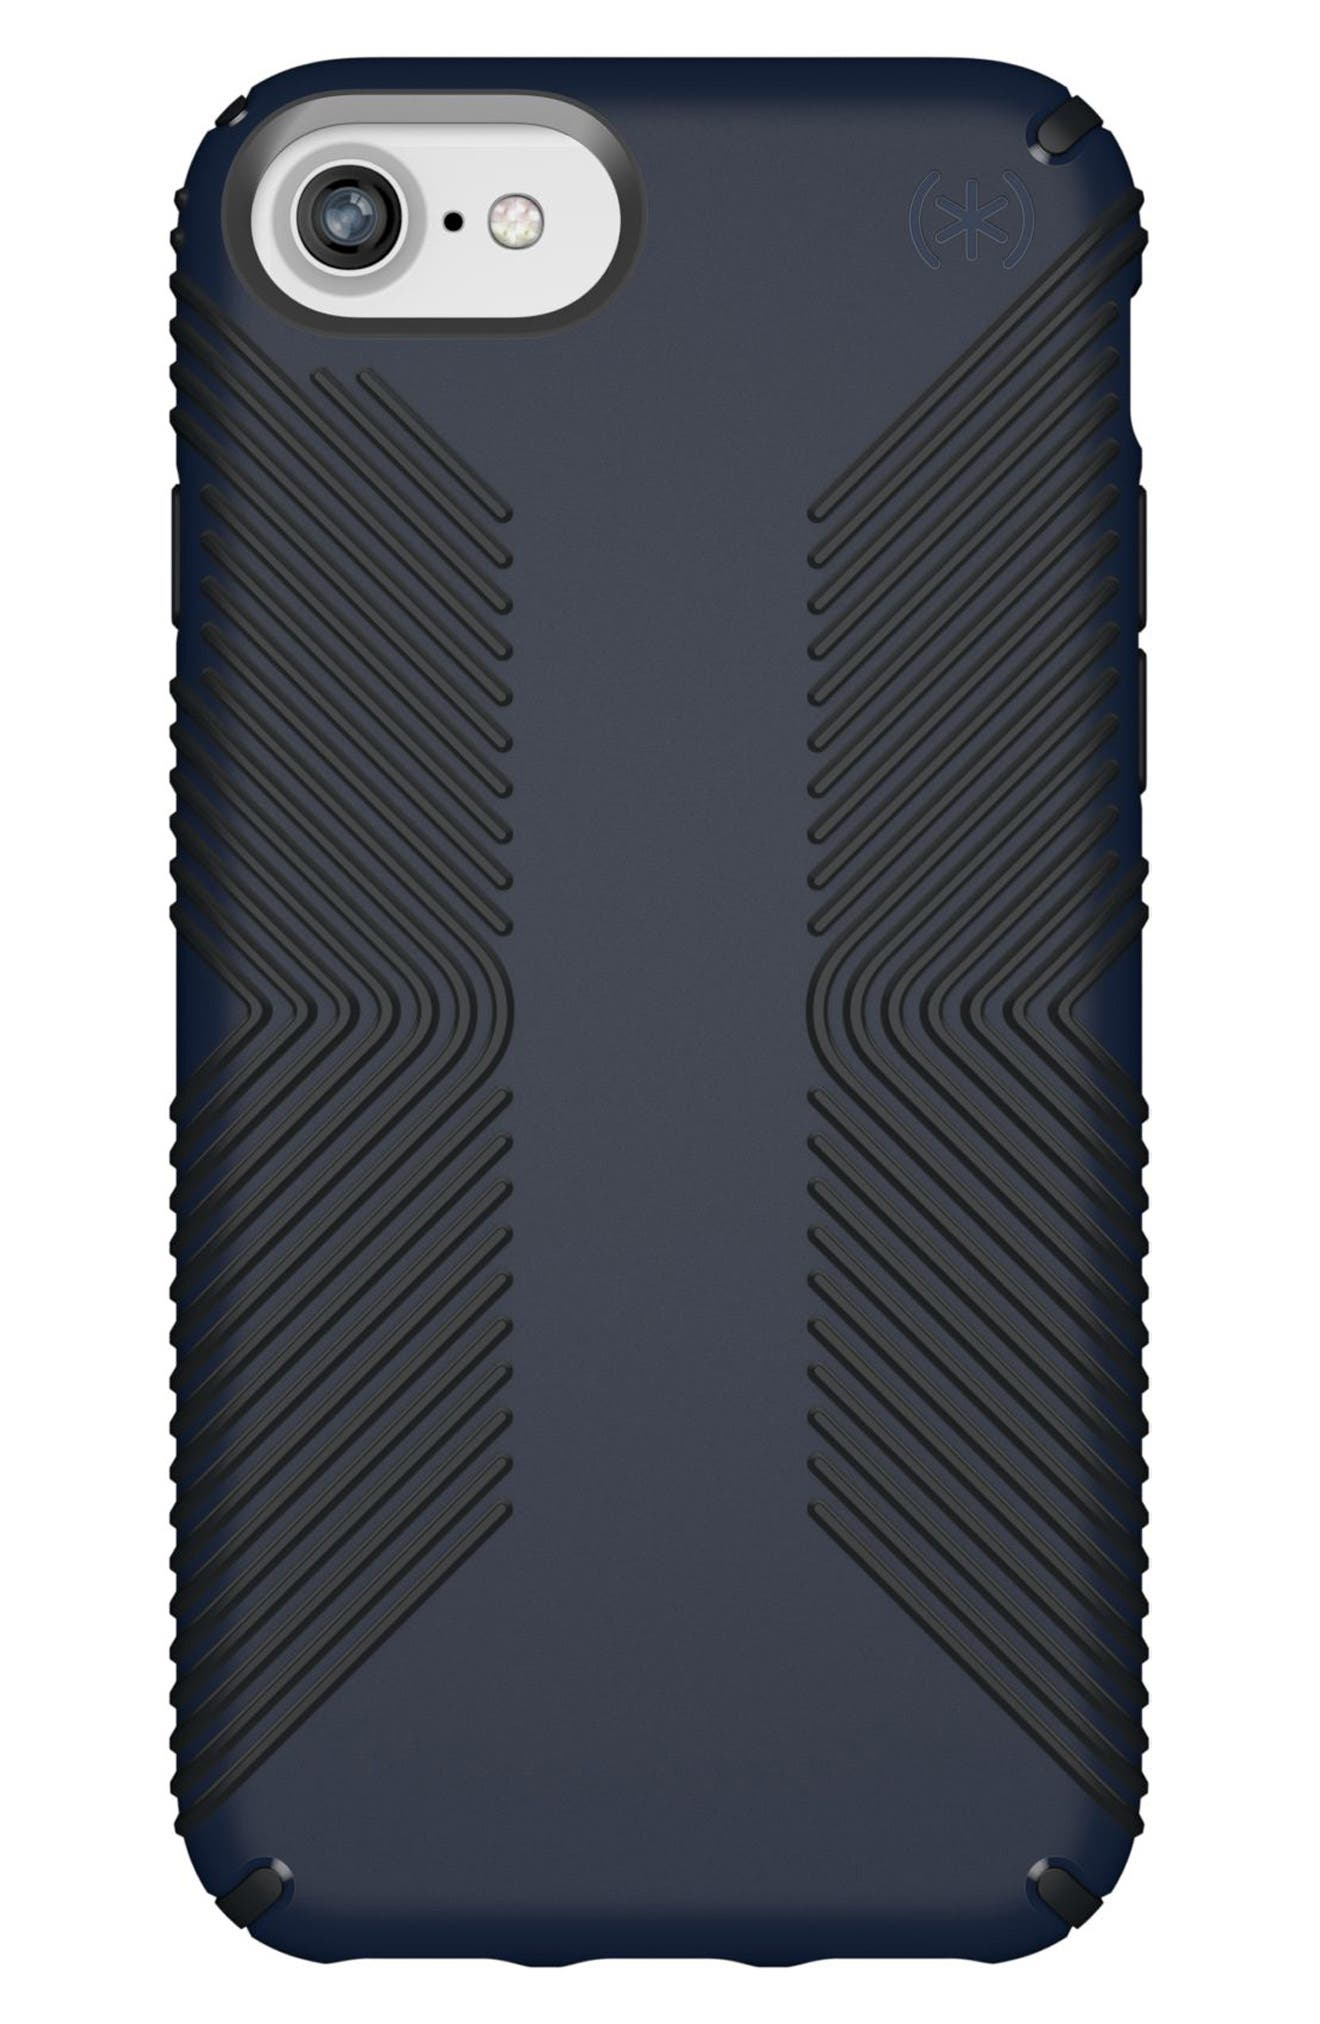 Grip iPhone 6/6s/7/8 Case,                             Main thumbnail 1, color,                             Eclipse Blue/ Carbon Black